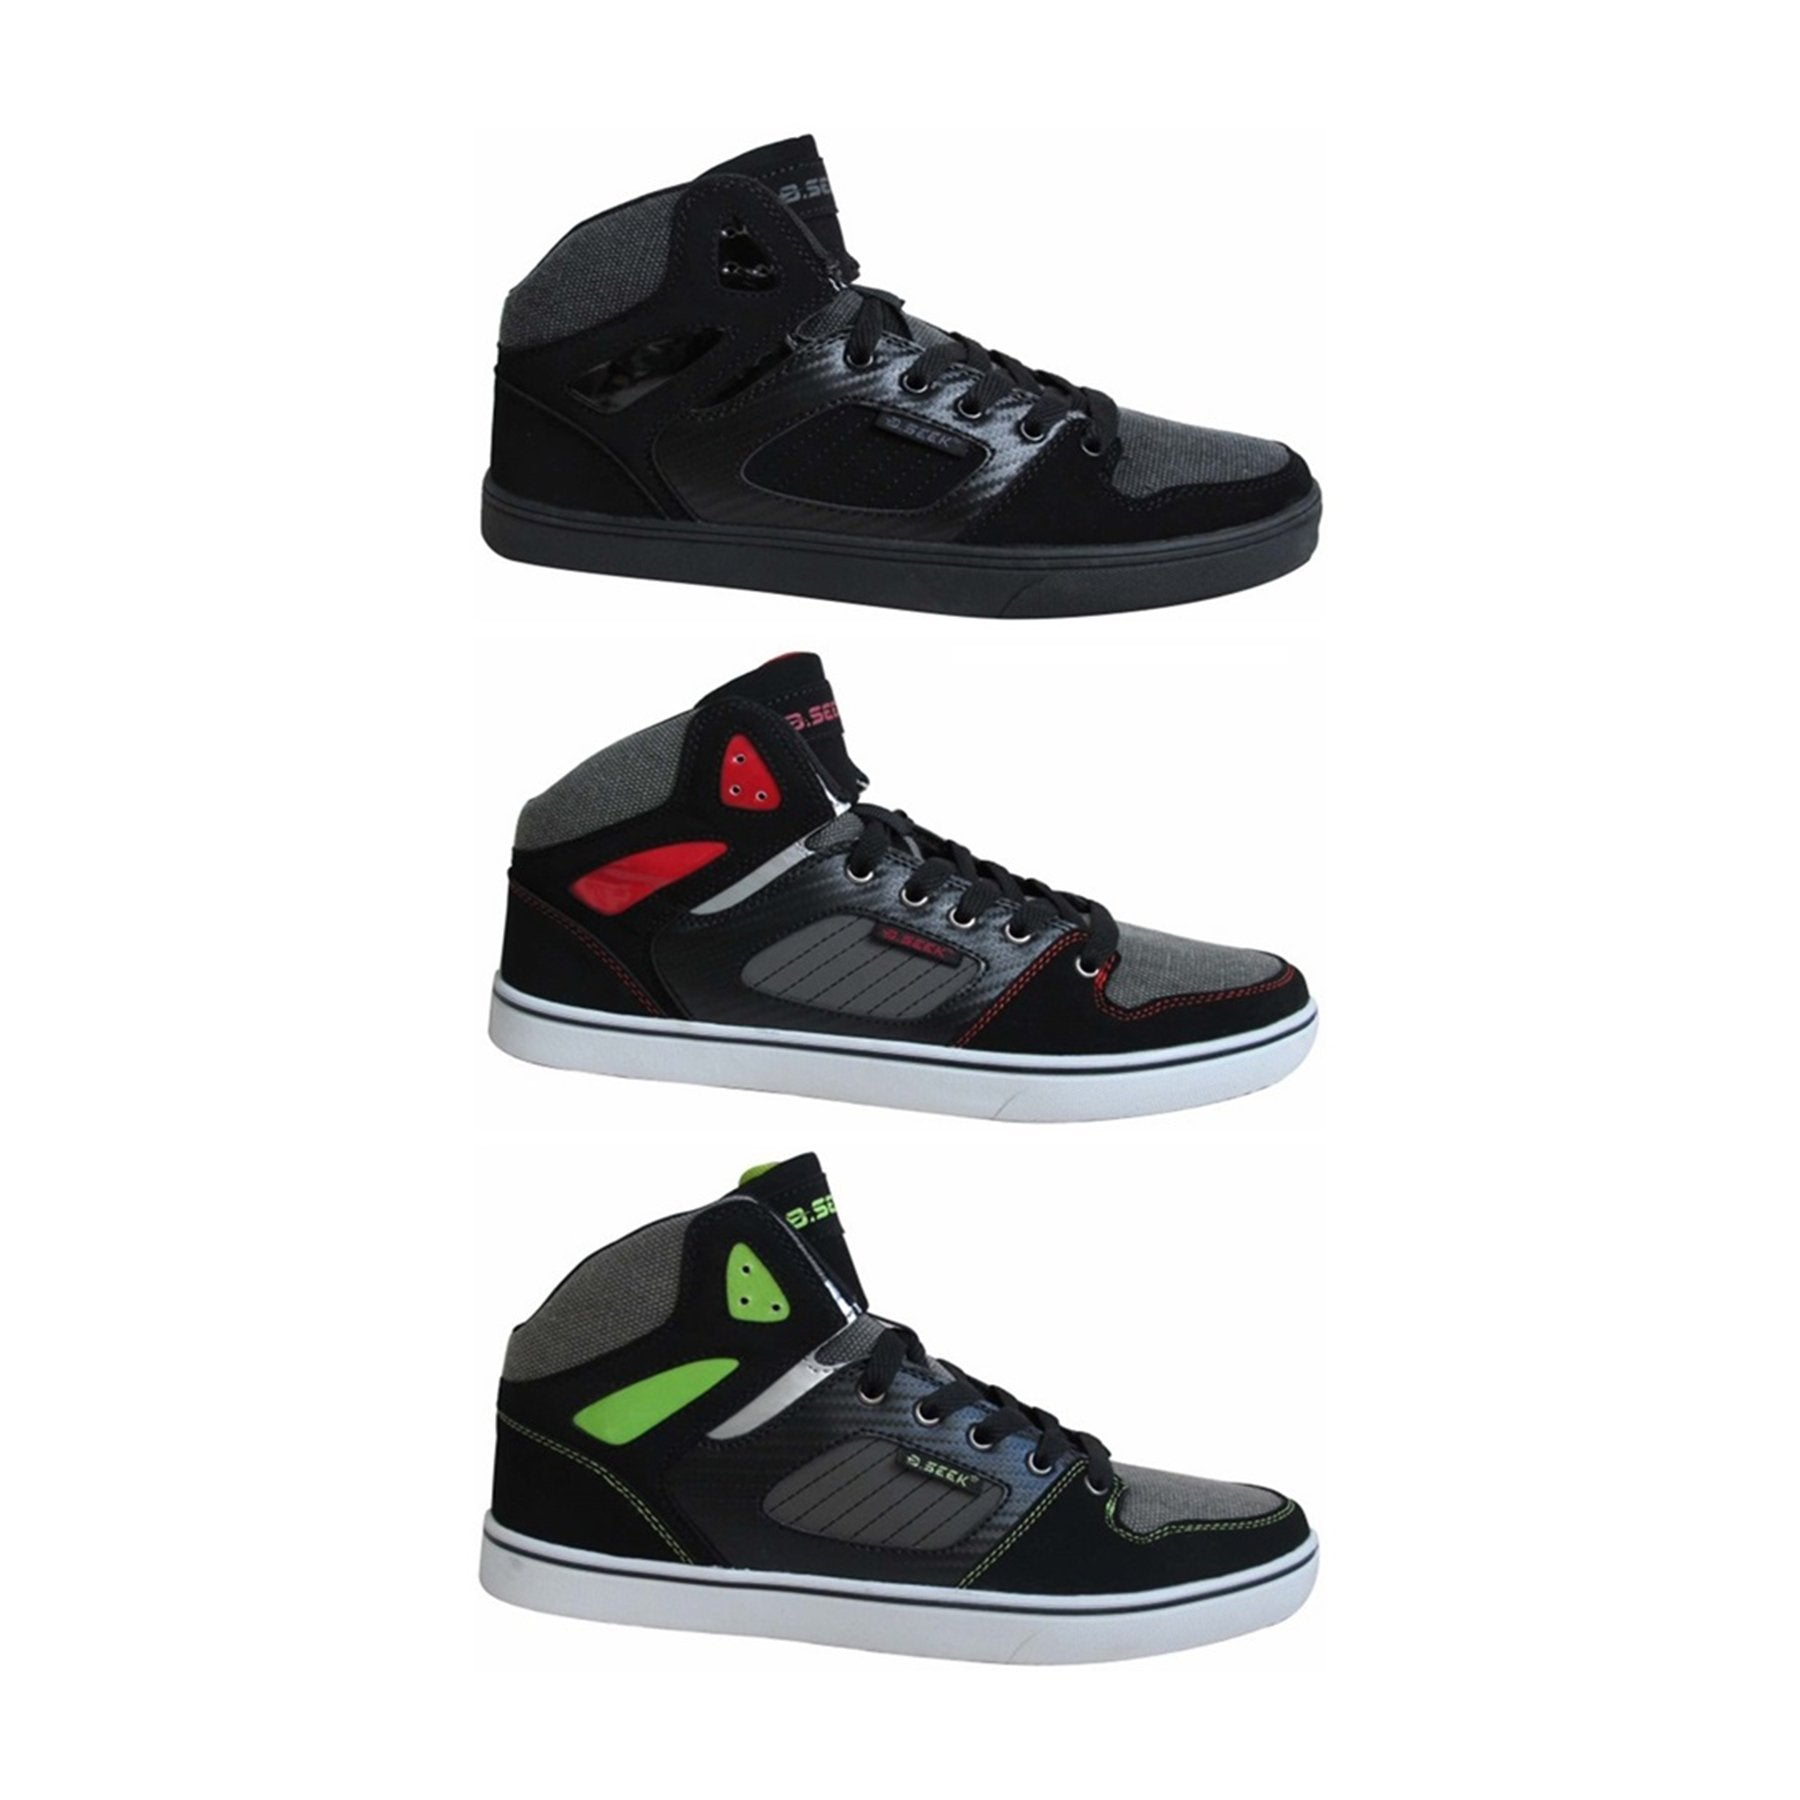 Wholesale Men's Shoes trainers lace up SNEAKERS ncpd5